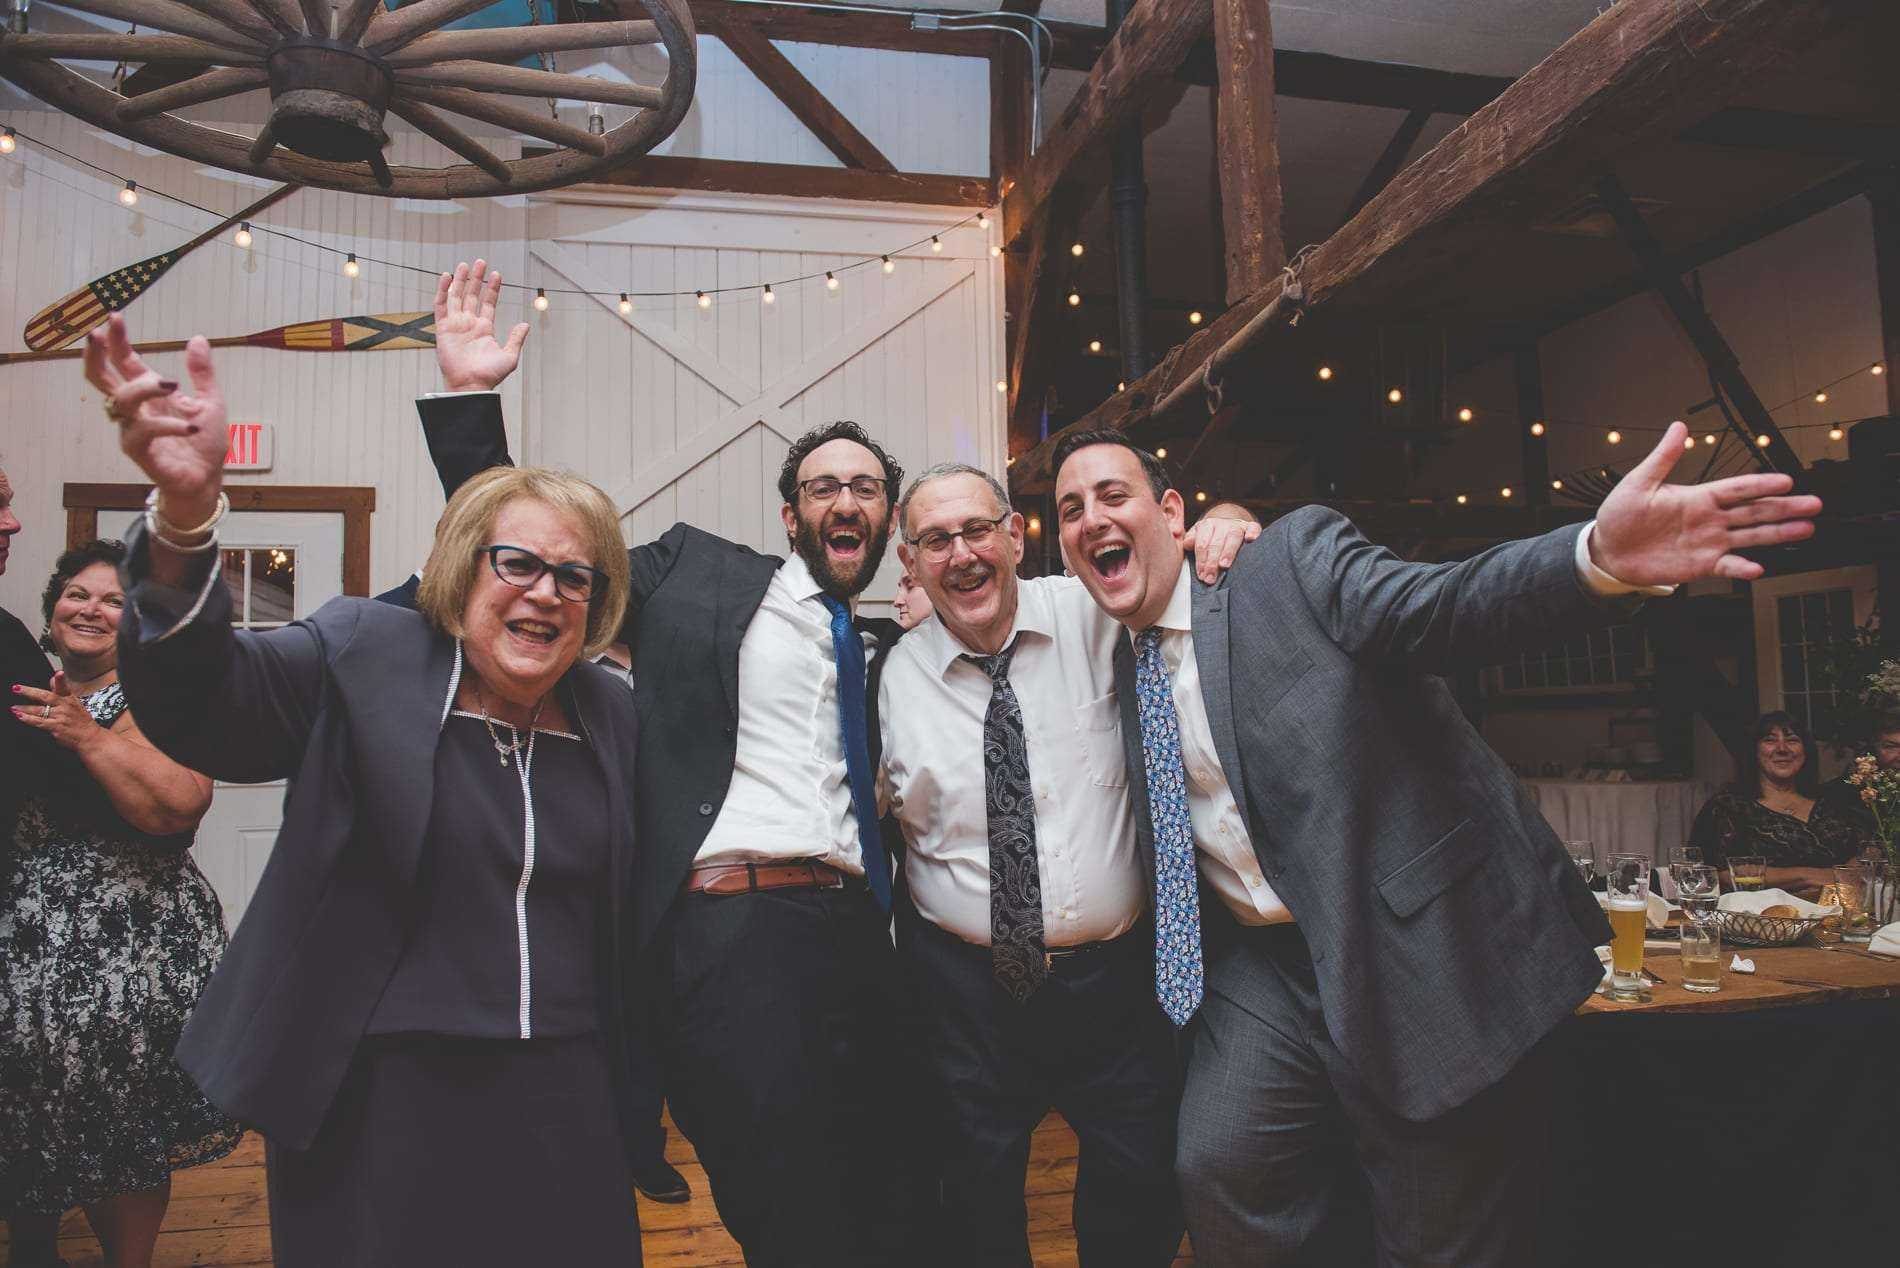 Jewish Wedding at MOYO Schwenksville barn wedding